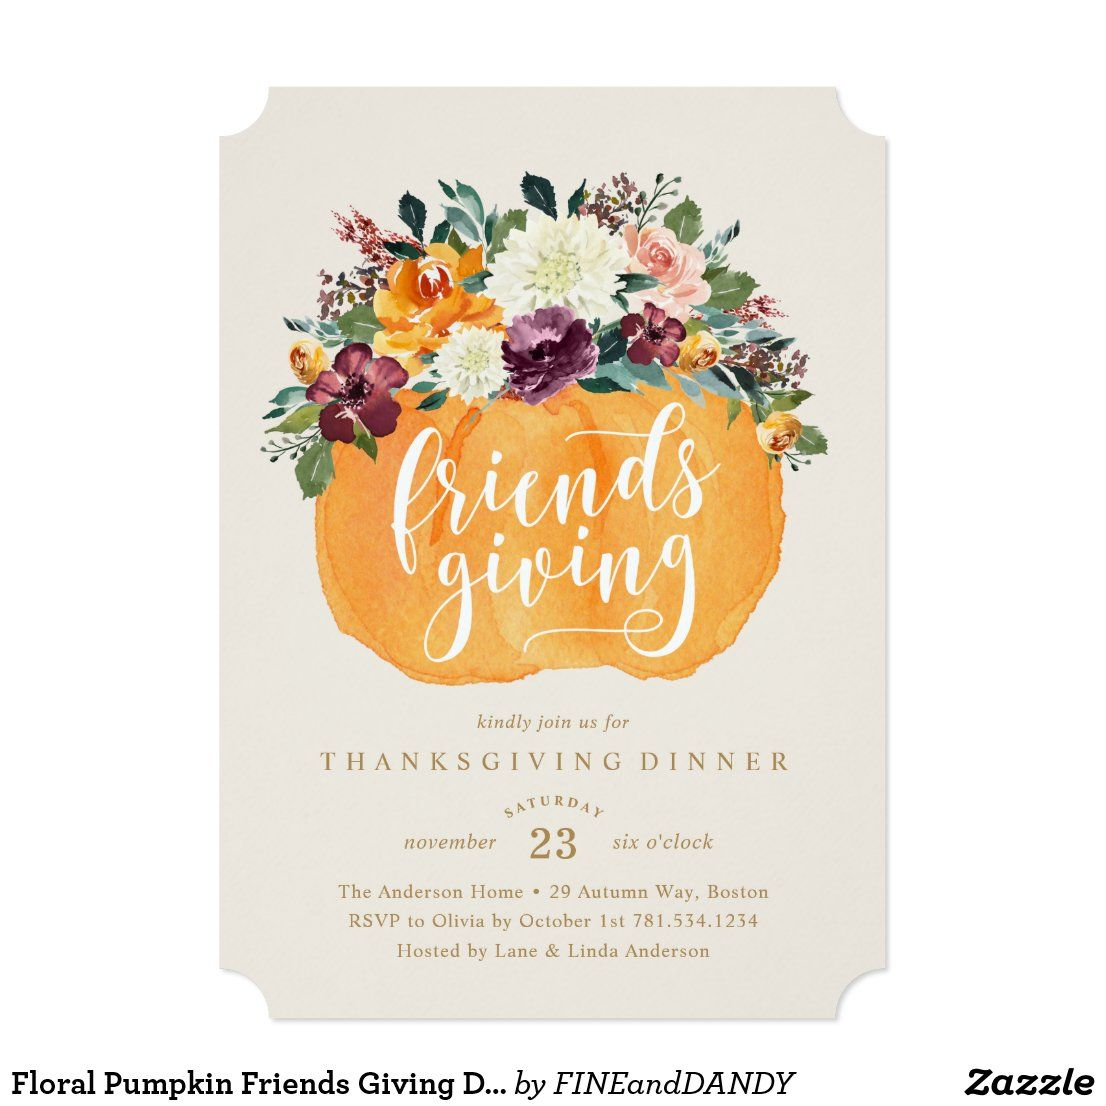 Floral Pumpkin Friends Giving Dinner Invitation